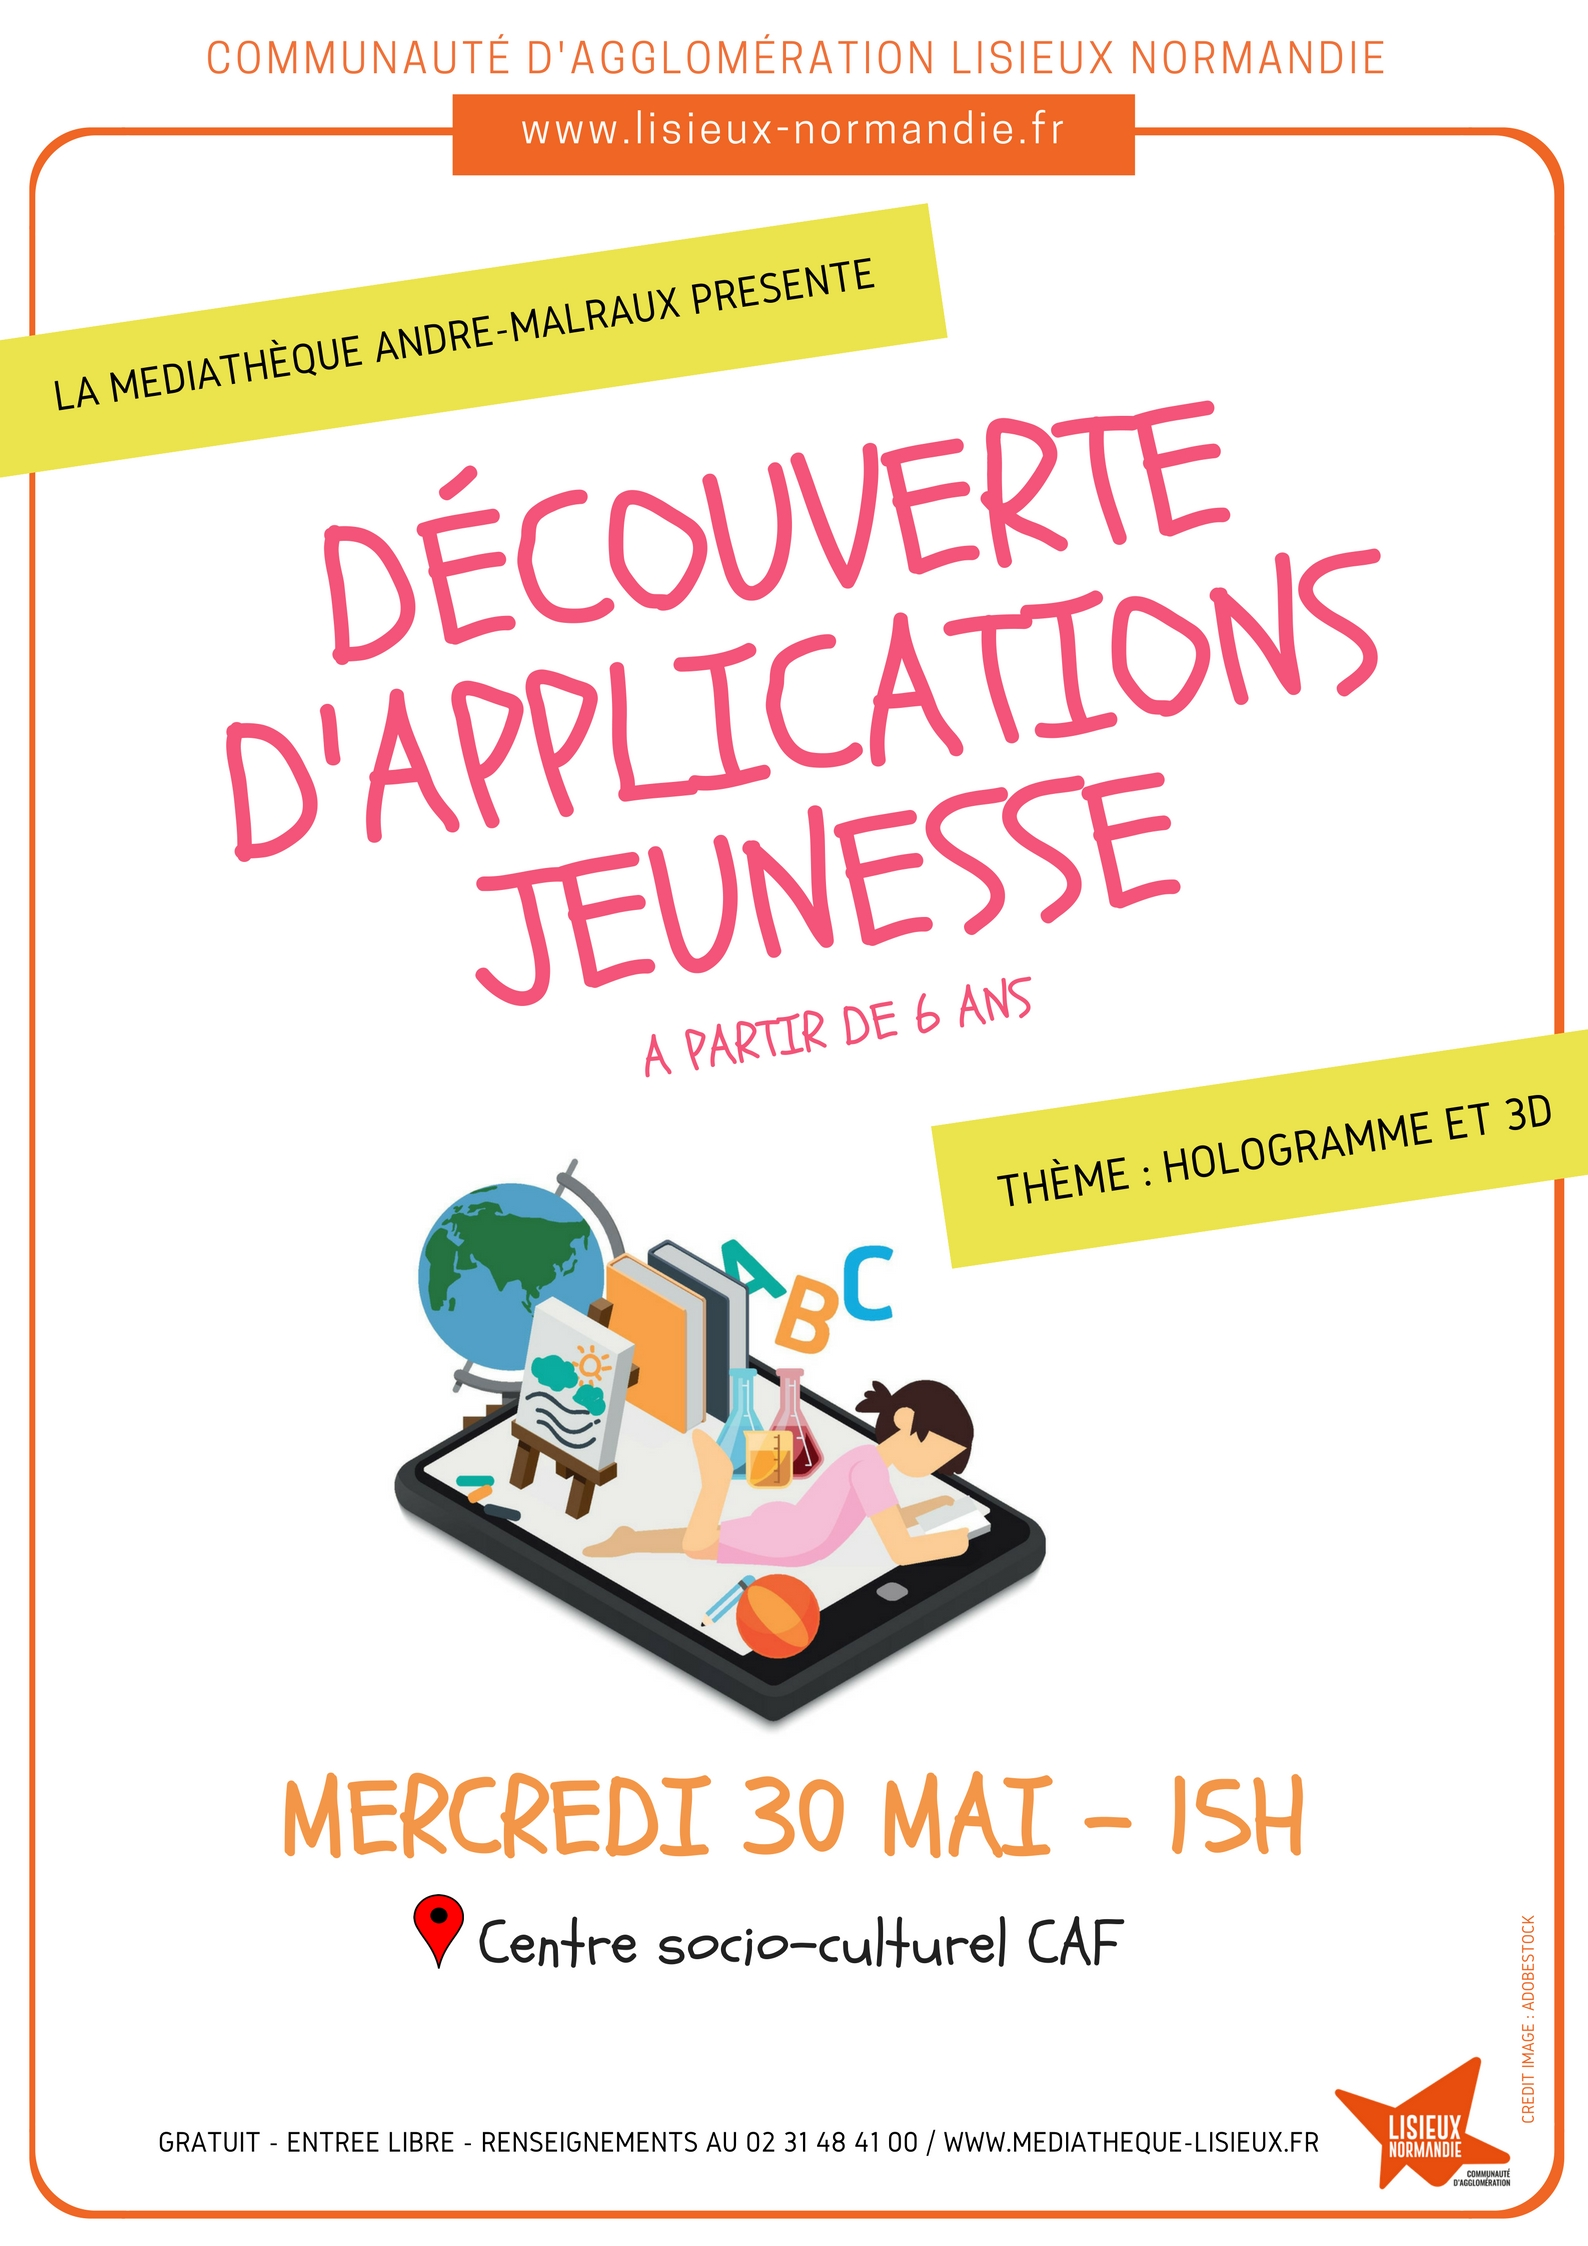 decouverte dapplis jeunesse 30 mai